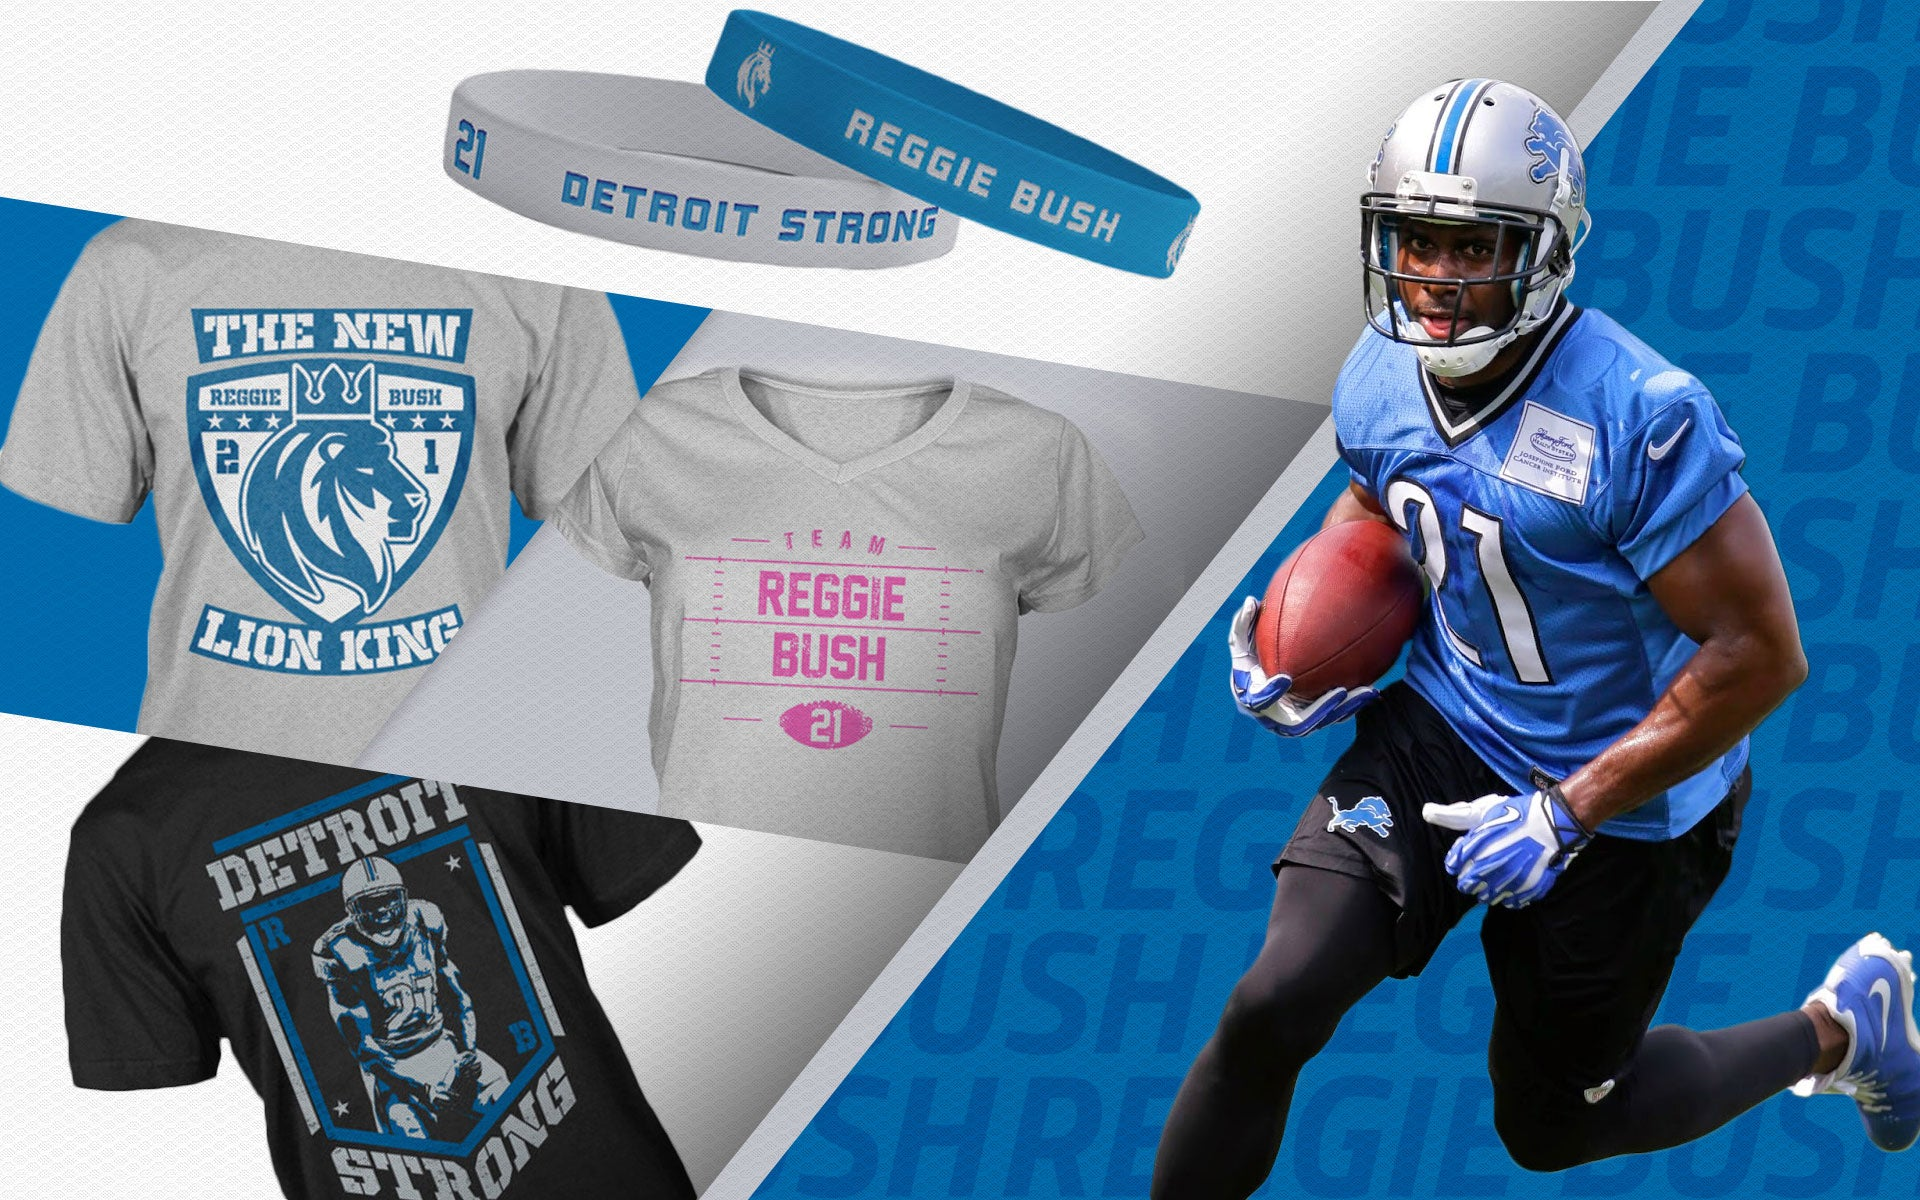 Reggie Bush Detroit Lions apparel